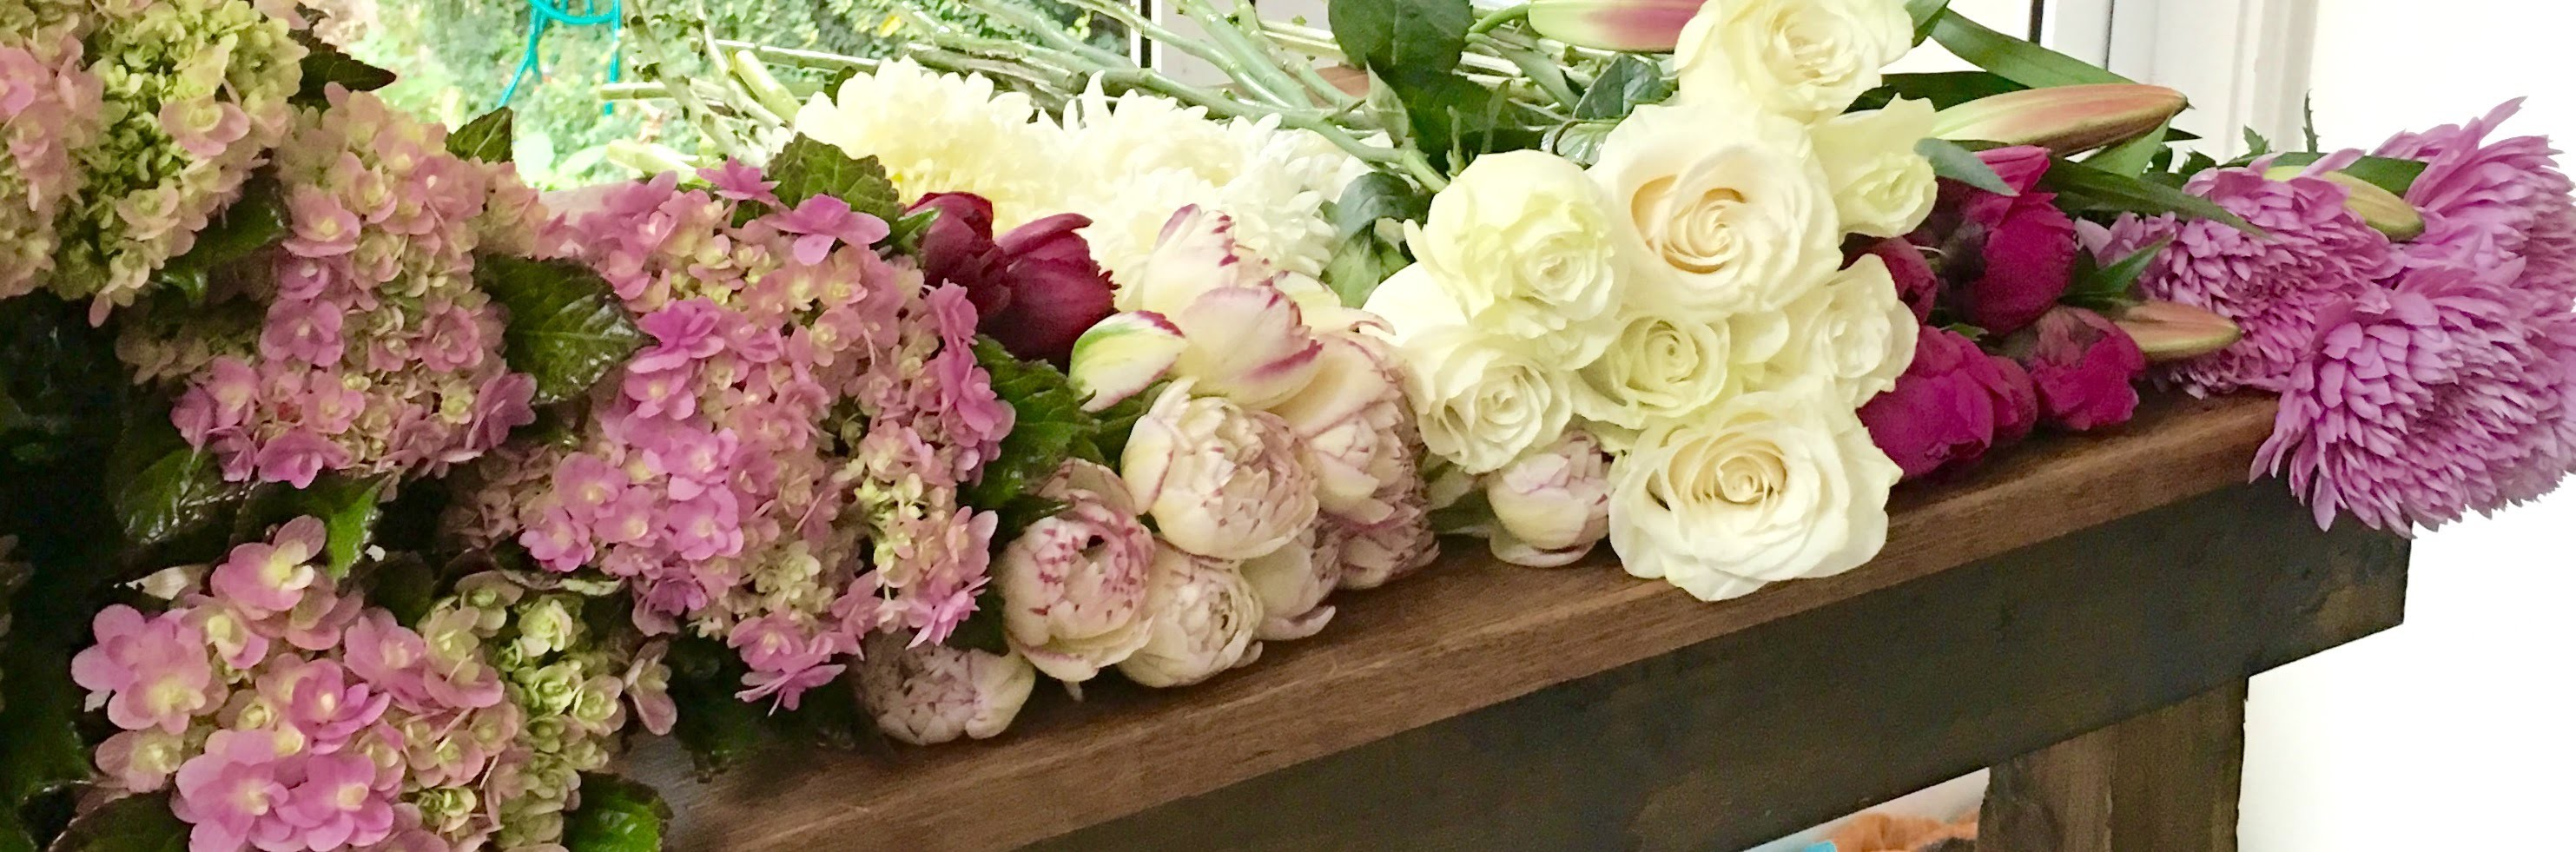 How to make your own gift bouquet